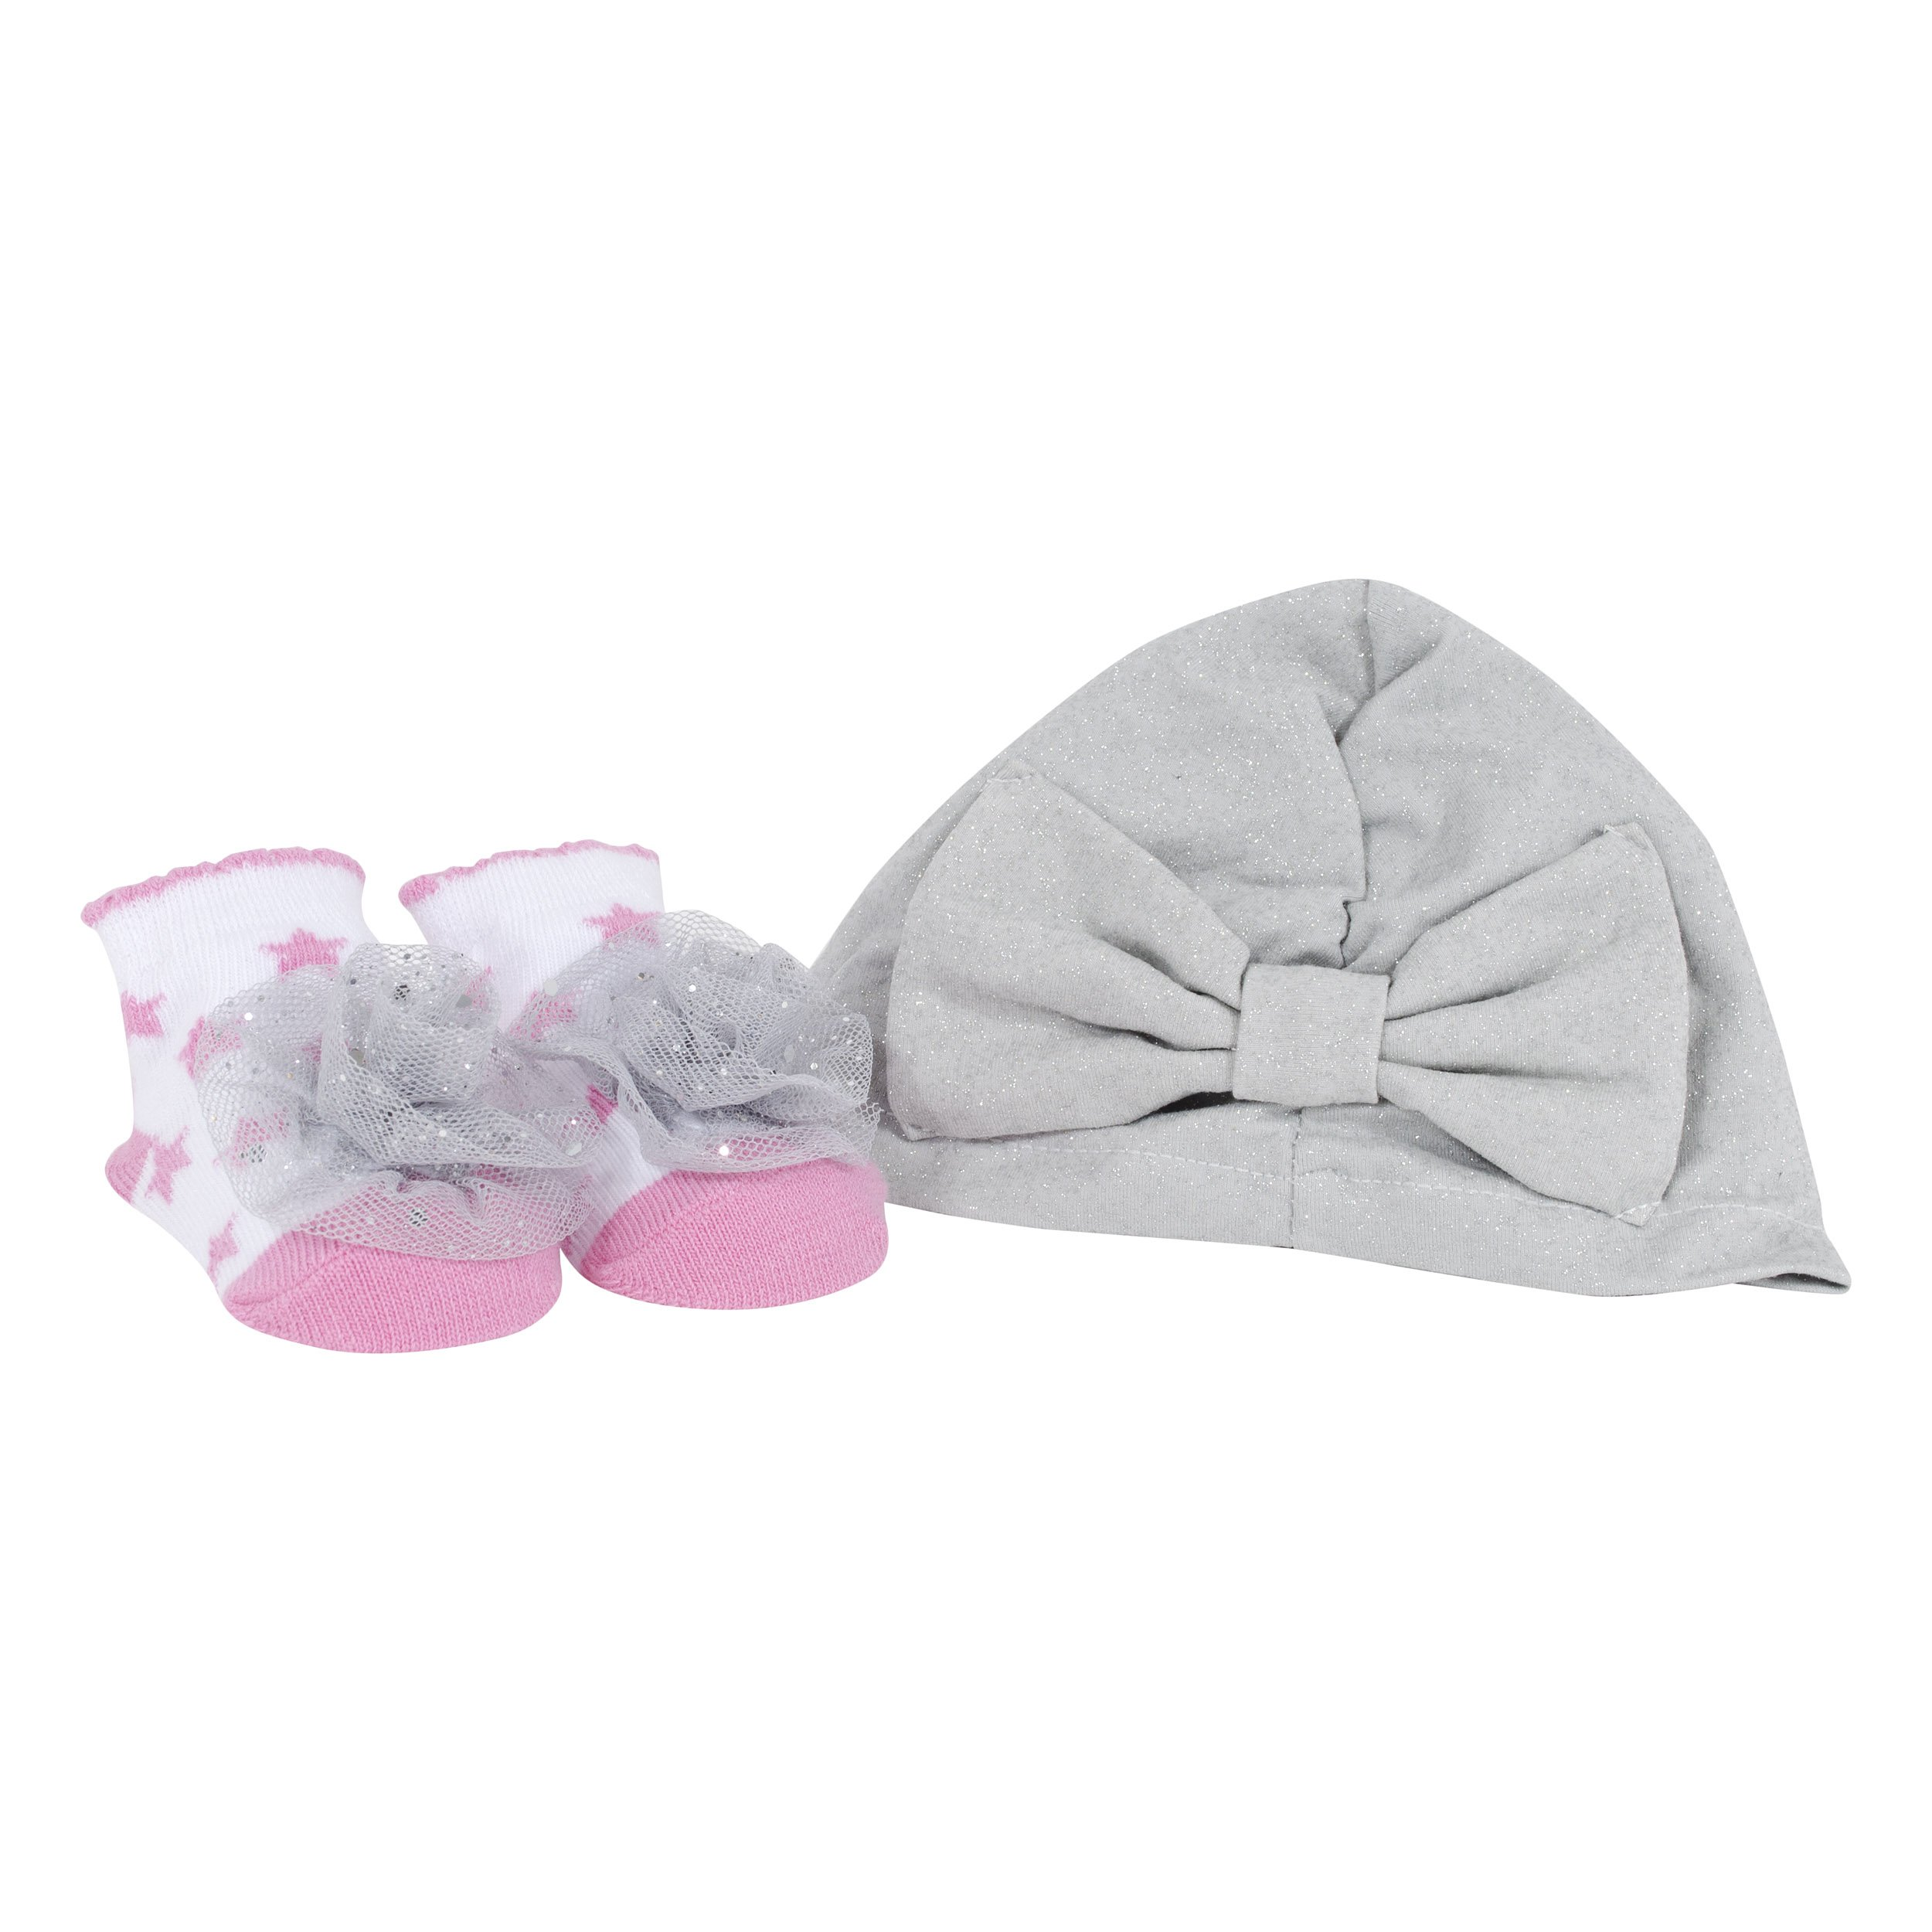 Limited Too 2 Piece Pink Hat & Fancy Feet Sock Set,size:One Size